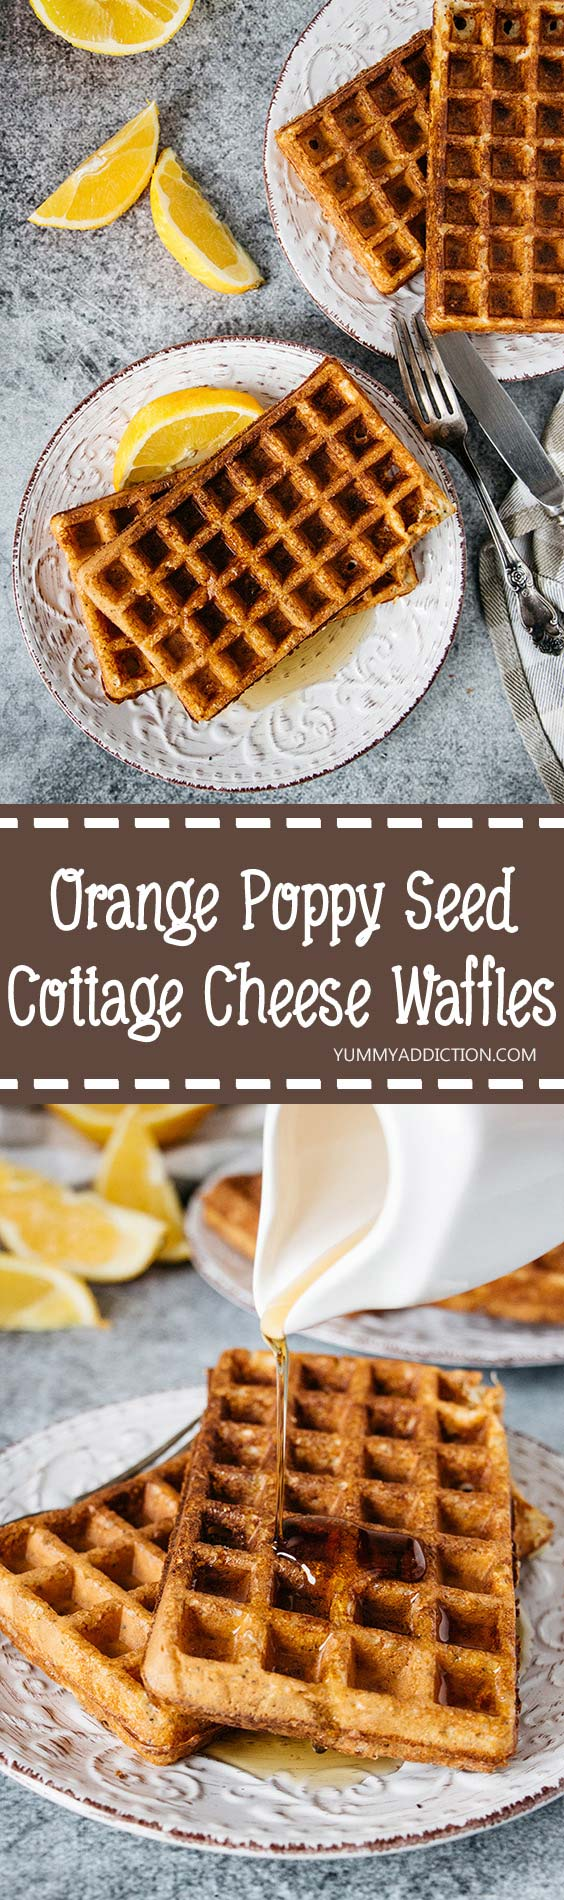 These orange flavored Cottage Cheese Waffles are crazy delicious + healthy. They are wheat-free (oat-based) and are literally packed with proten. A great breakfast or a snack! #glutenfree | yummyaddiction.com